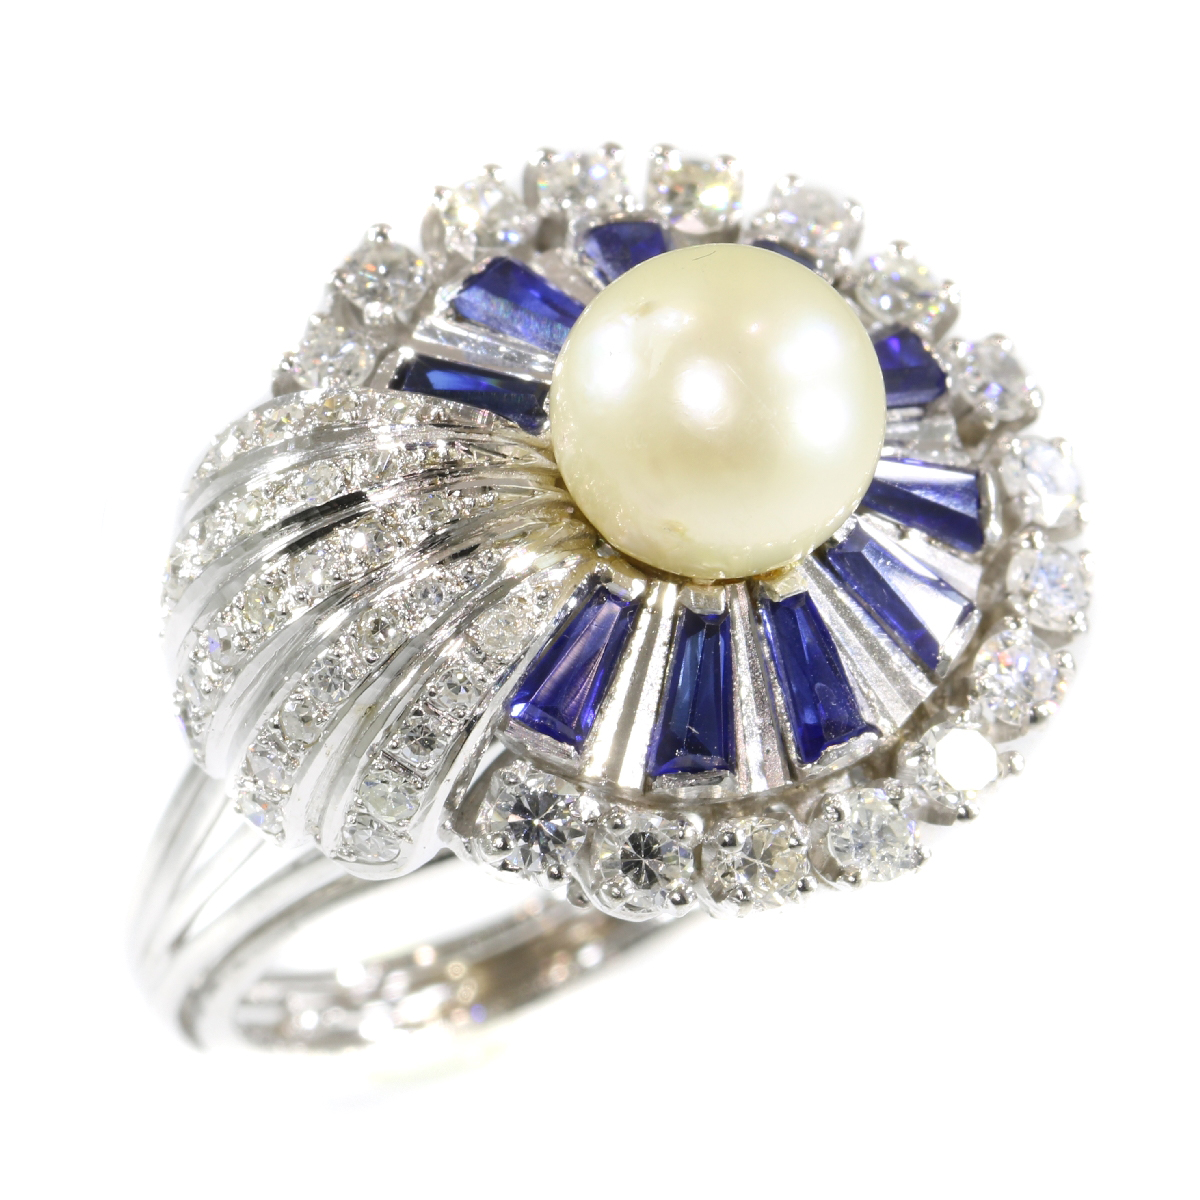 Vintage platinum diamond sapphire and pearl cocktail ring